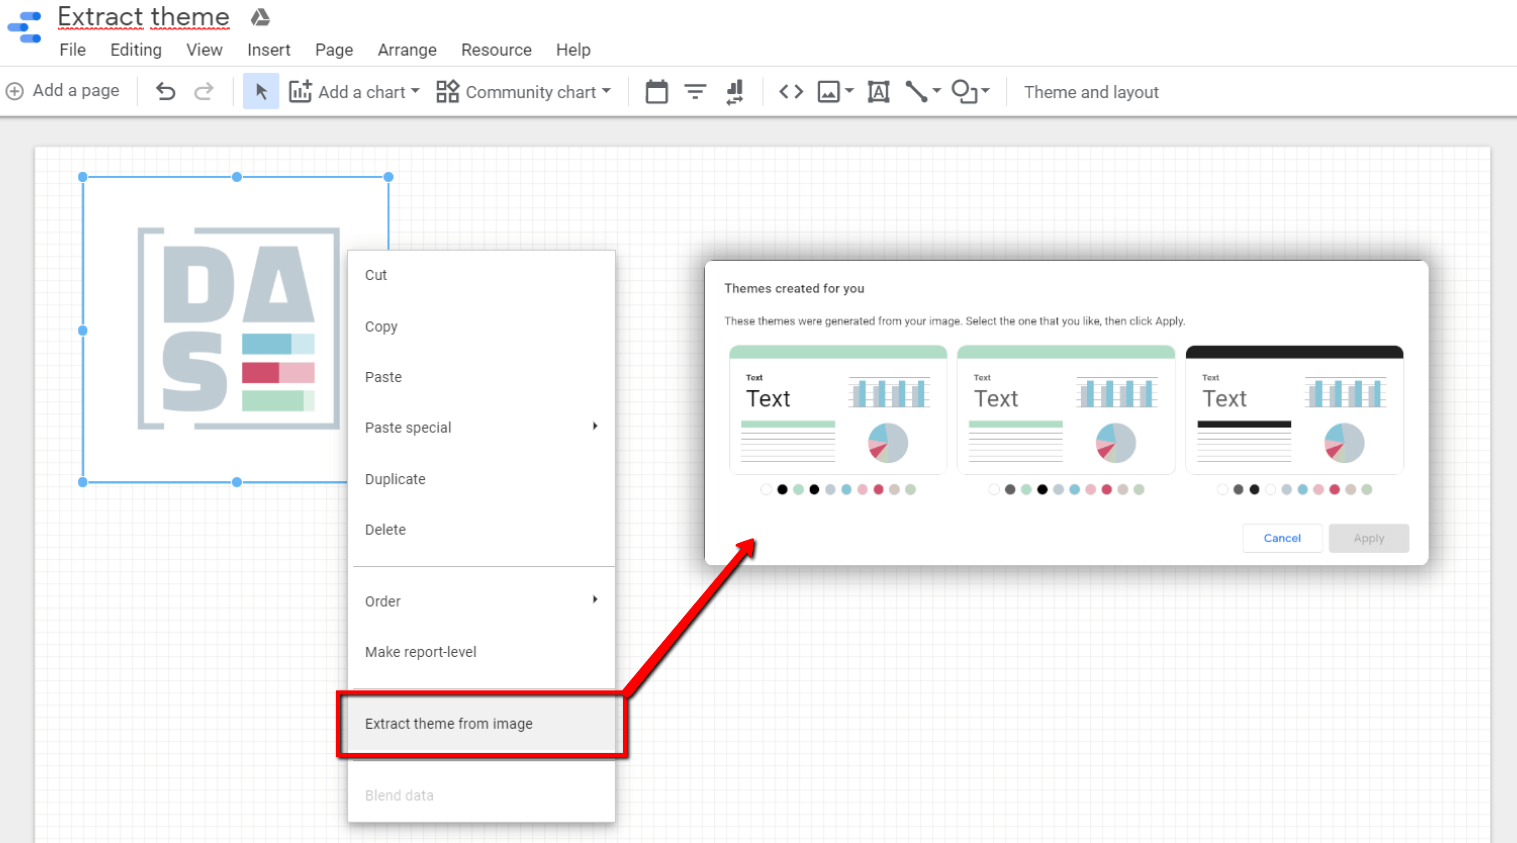 Extract theme from image - feature in Data Studio